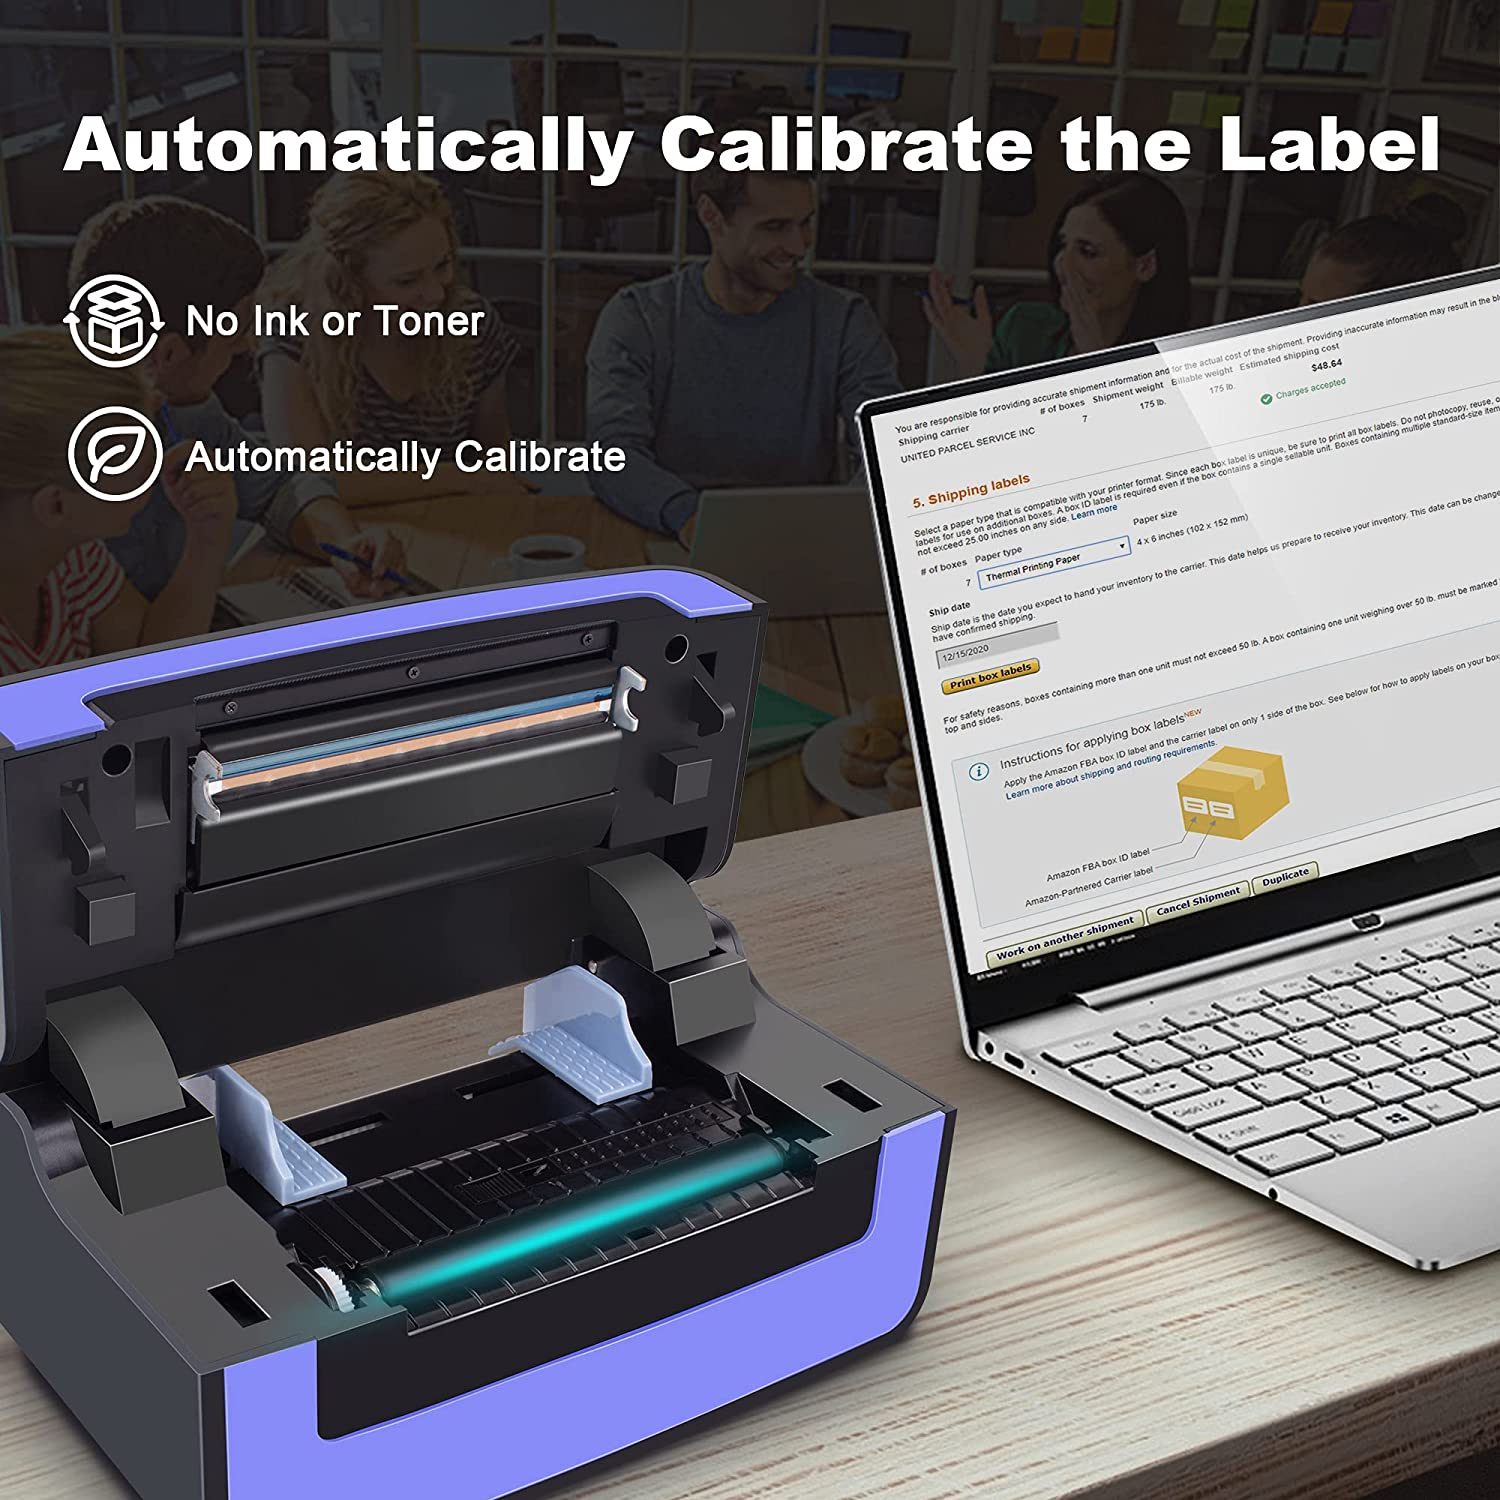 Polono Label Printer - 150mm/s 4x6 Thermal Label Printer, Commercial Direct Thermal Label Maker, Compatible with Amazon, Ebay, Etsy, Shopify and FedEx, One Click Setup on Windows and Mac